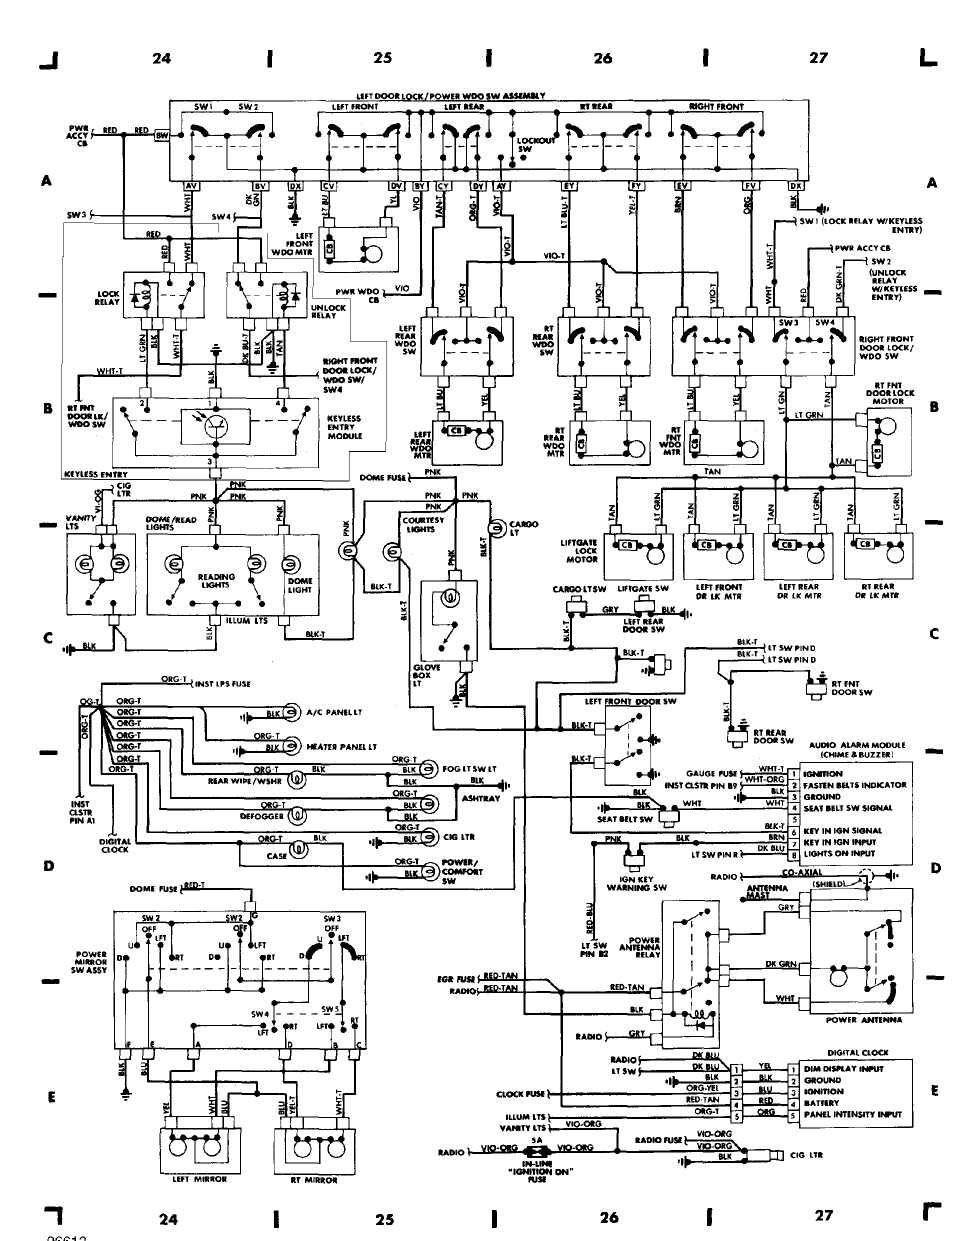 wiring_diagrams_html_61f5e0ad 2000 jeep xj wiring diagram 1998 jeep cherokee wiring diagrams pdf  at bakdesigns.co